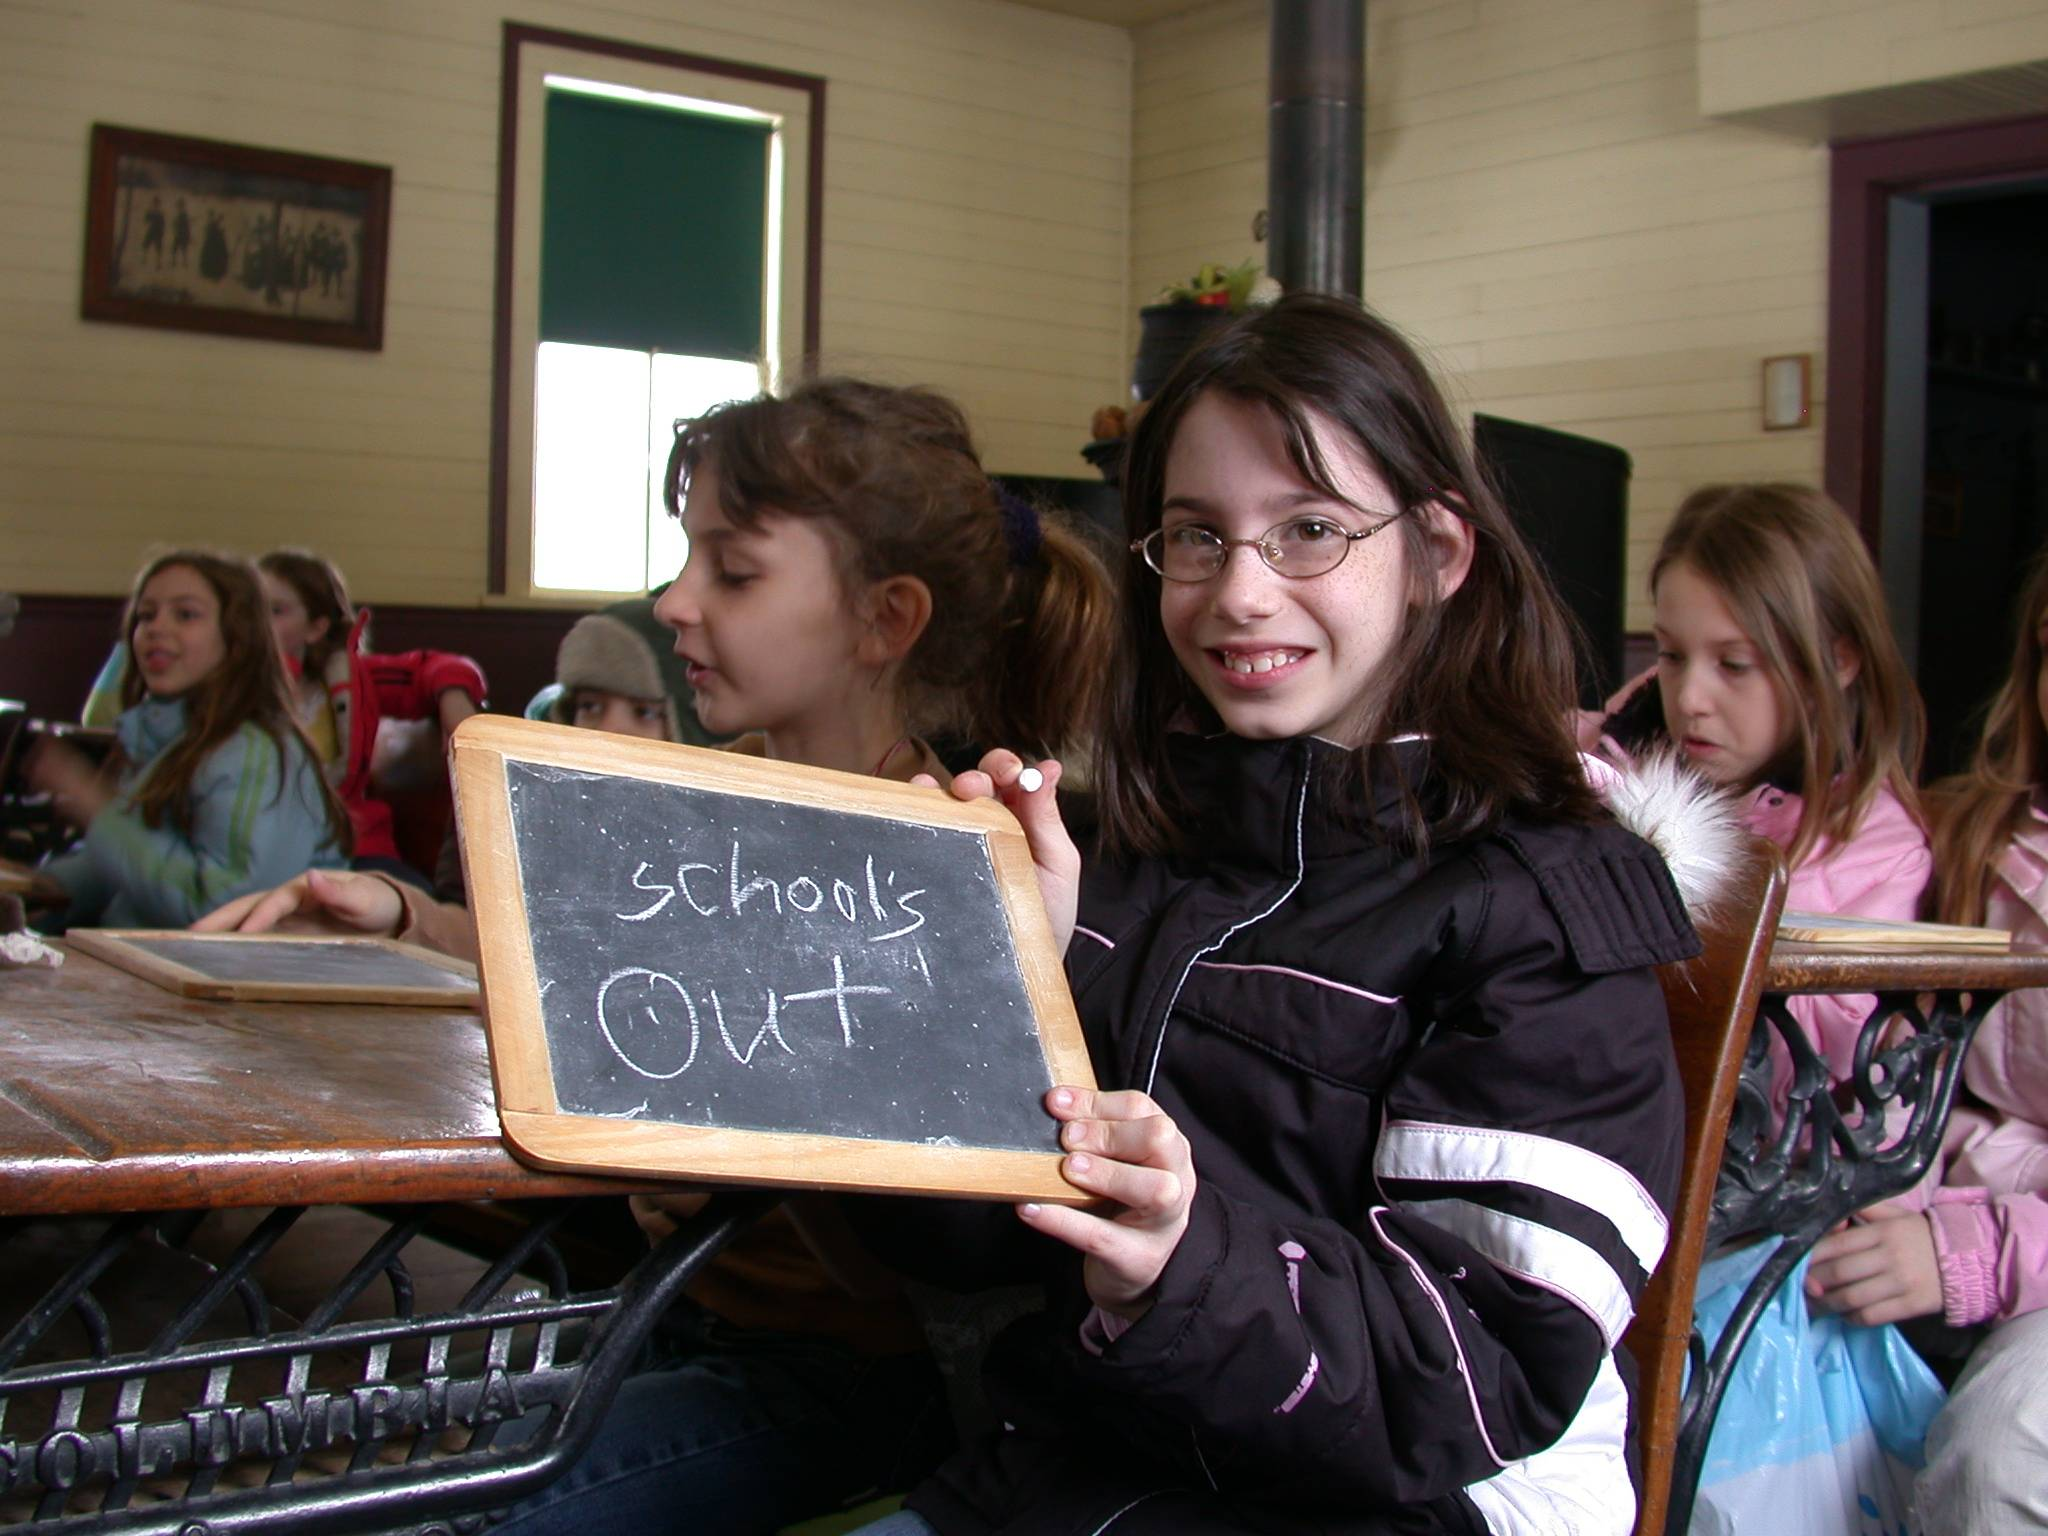 During School's Out: Book It!, students in grades 1-5 can visit Naper Settlement's one-room schoolhouse to recite a poem and write on a slate.